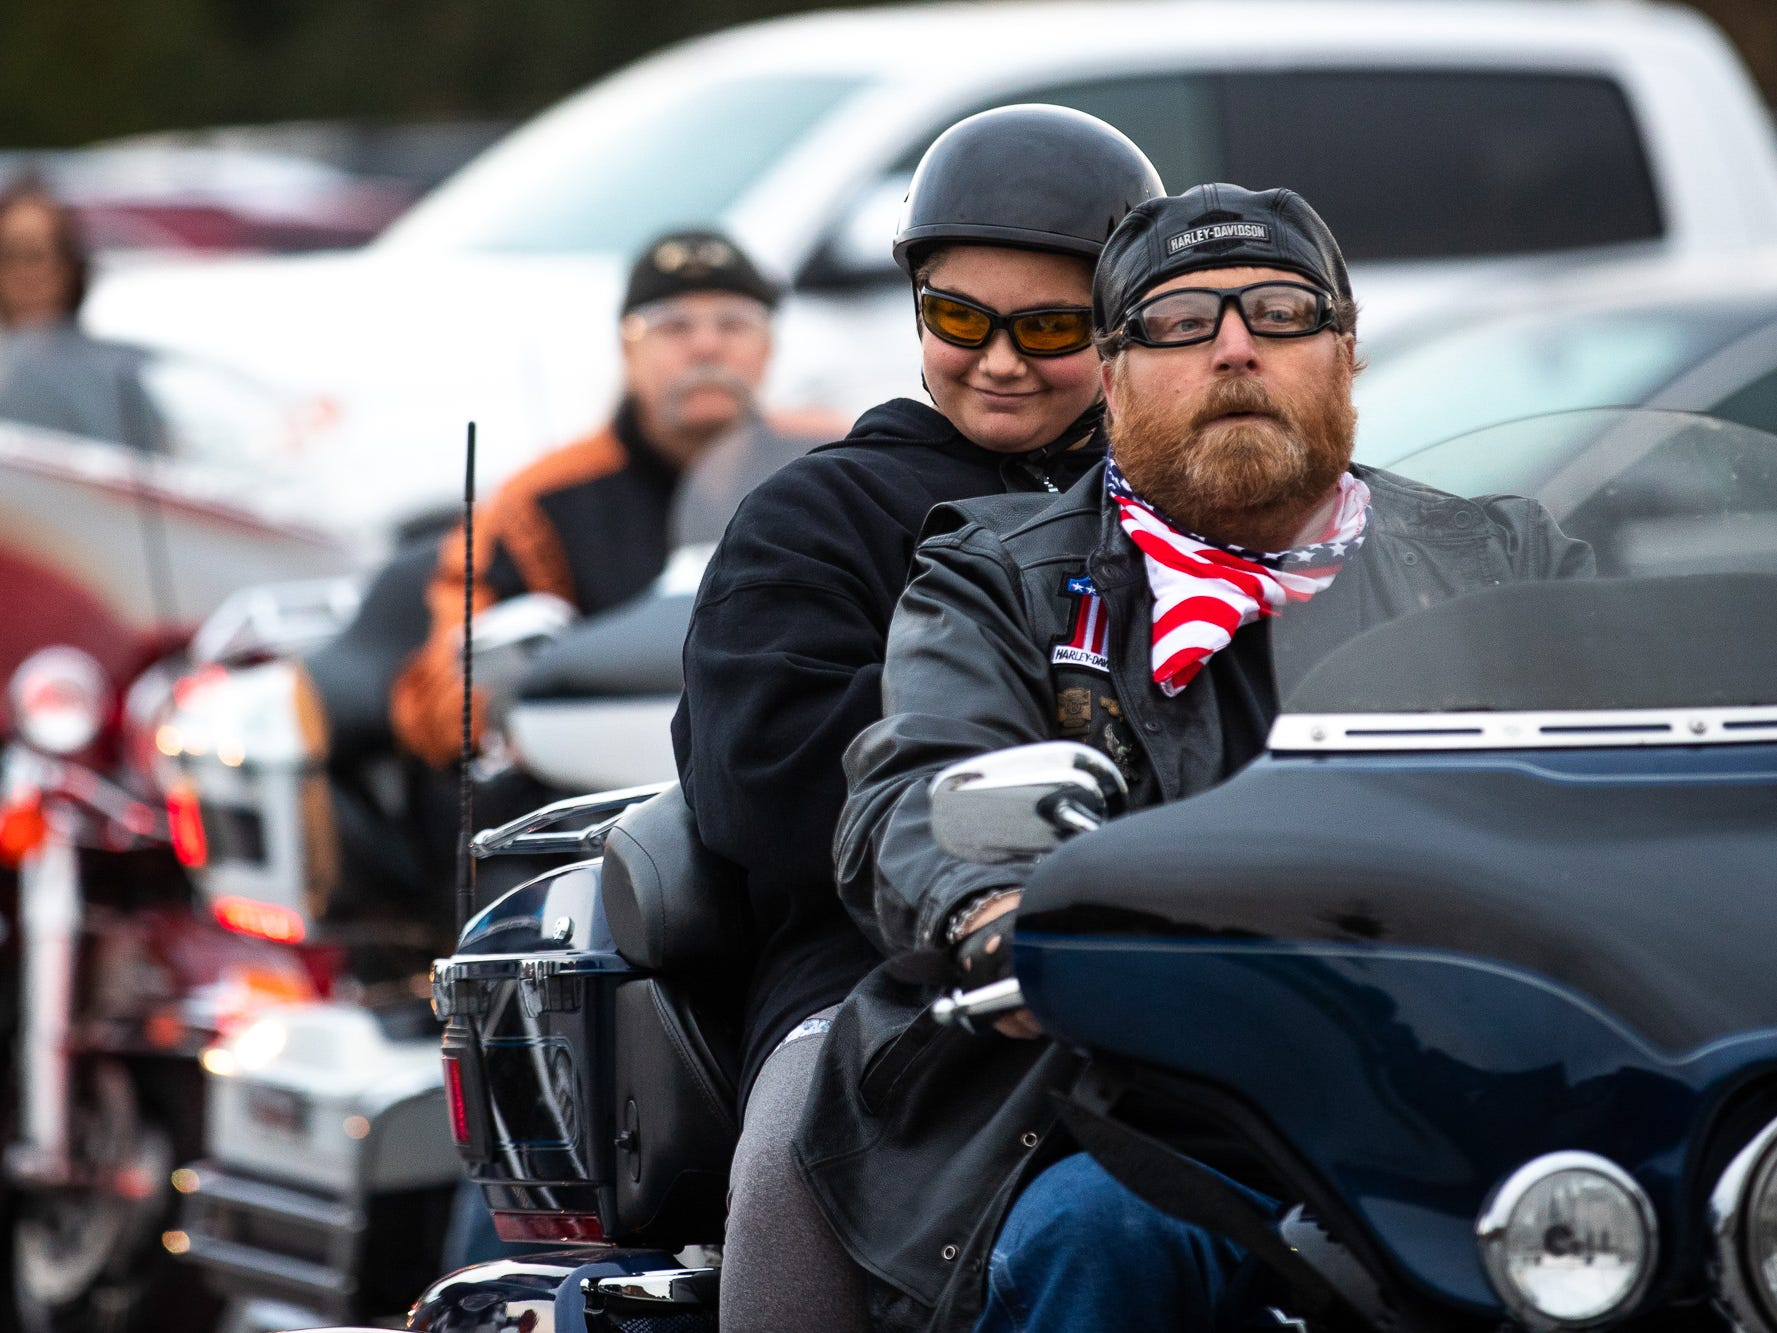 Aireana Mummerth, a 6th grader and victim of bullying, smiles on the back of a bike as she arrives to school at Emory Markle Intermediate escorted by dozens of members of the Alliance of Bikers Aimed Toward Education biker group, Friday, Oct. 5, 2018, in Penn Township. The ride was organized to show their support for Aireana and show that other victims of bullying can find support.